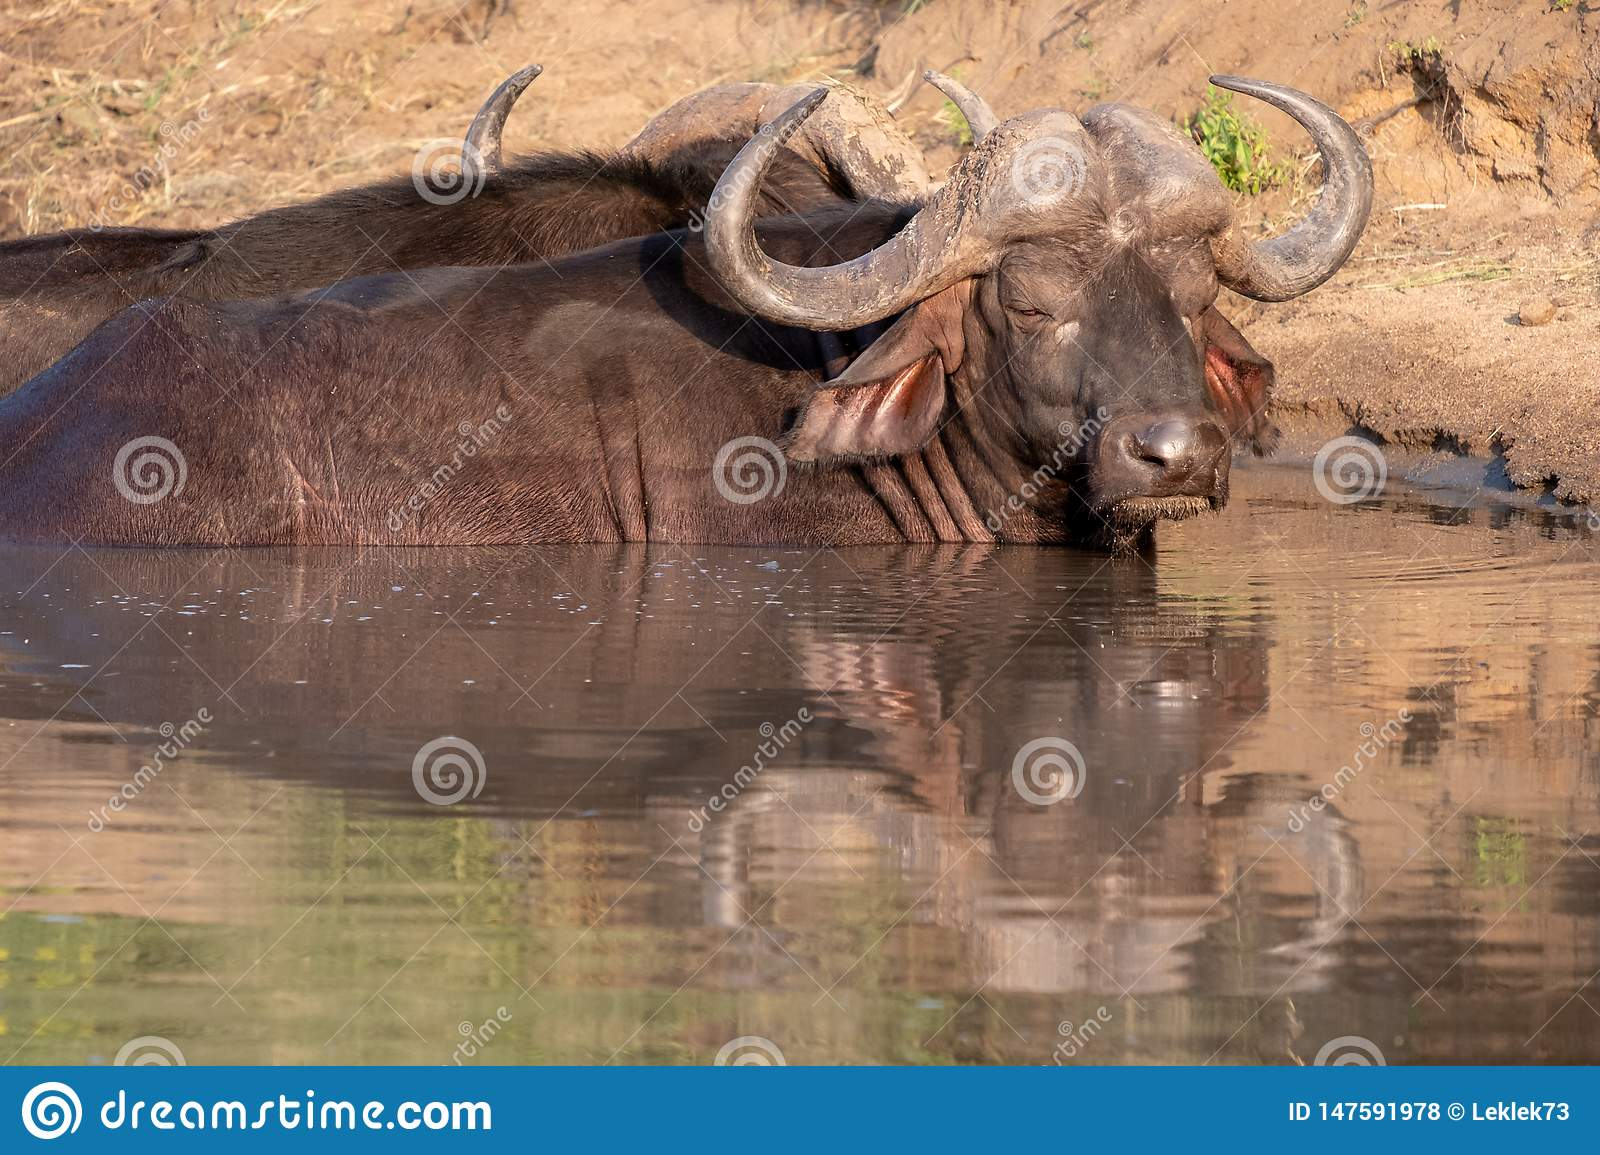 African Buffalo basking in the water in the late afternoon sun, photographed at Kruger National Park in South Africa.